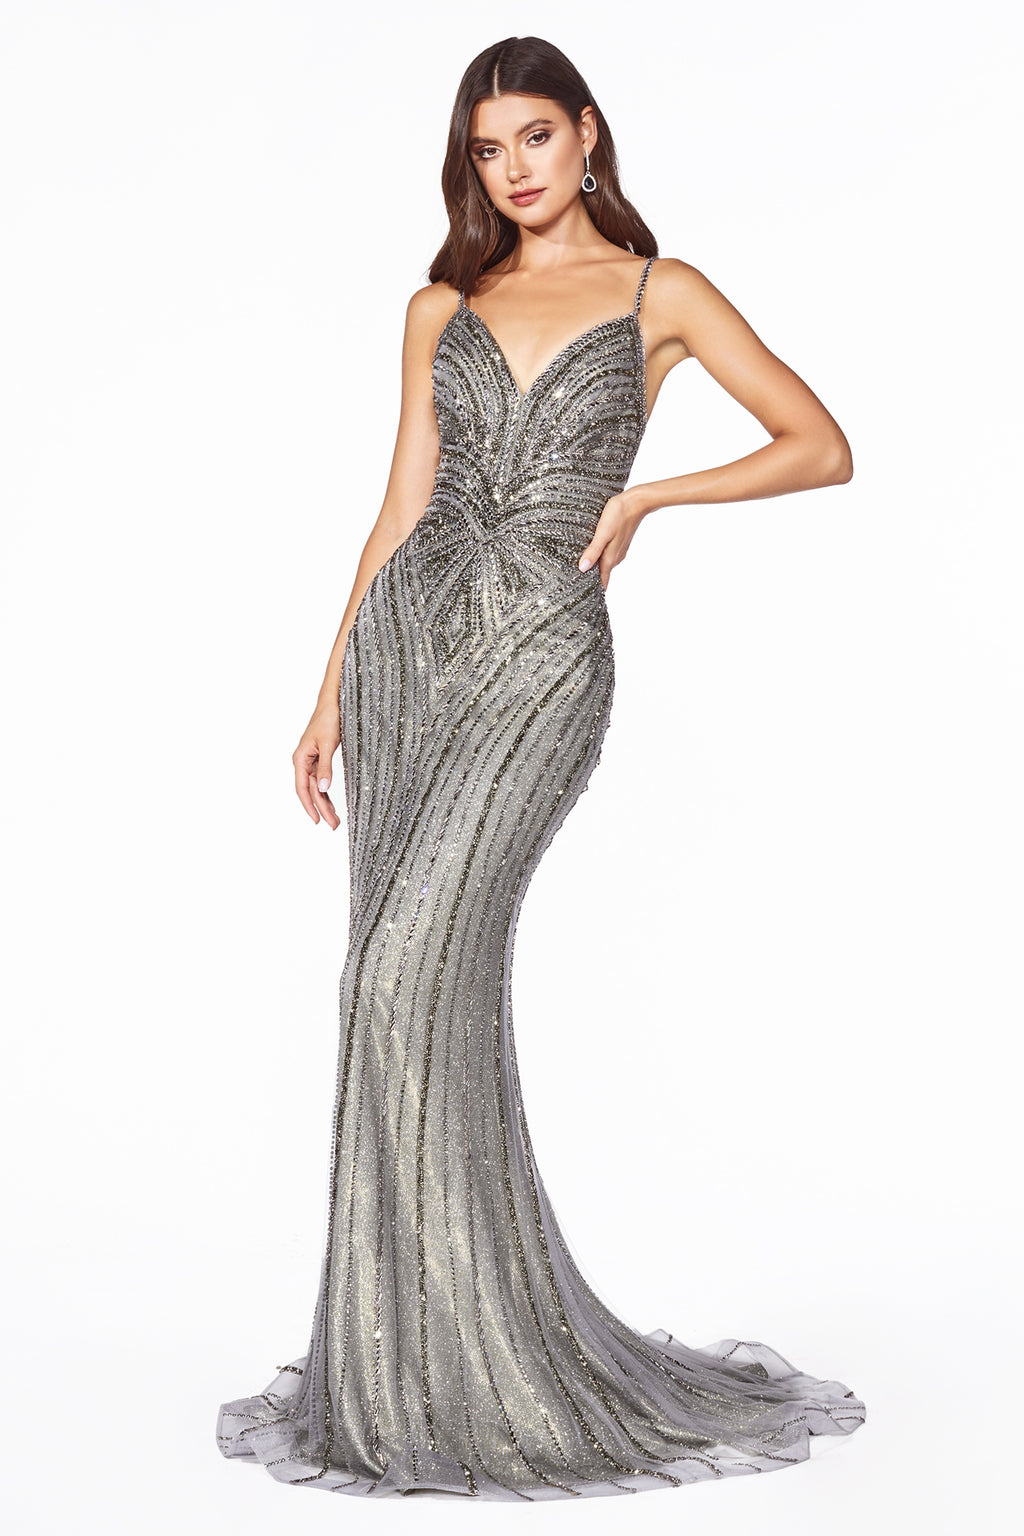 Austrian Crystal Gown With Flowing Train Style #LAKC898 | Prom 2020